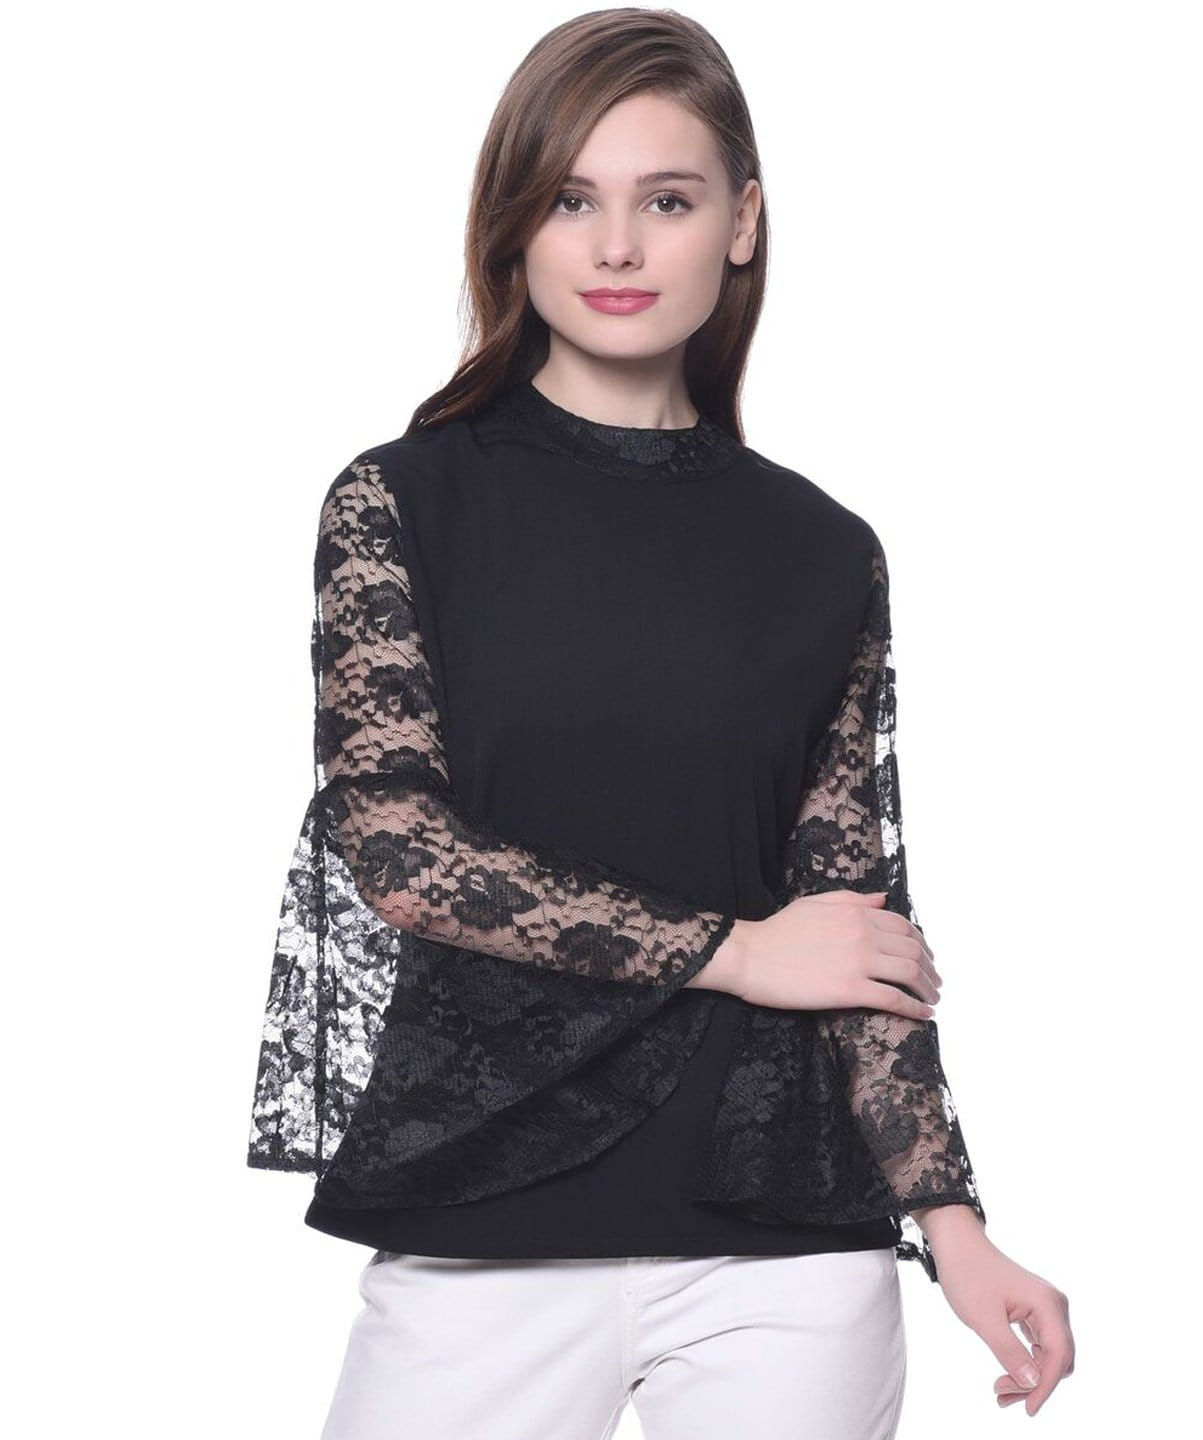 Solid Black Lace Bell Sleeves Top - Uptownie